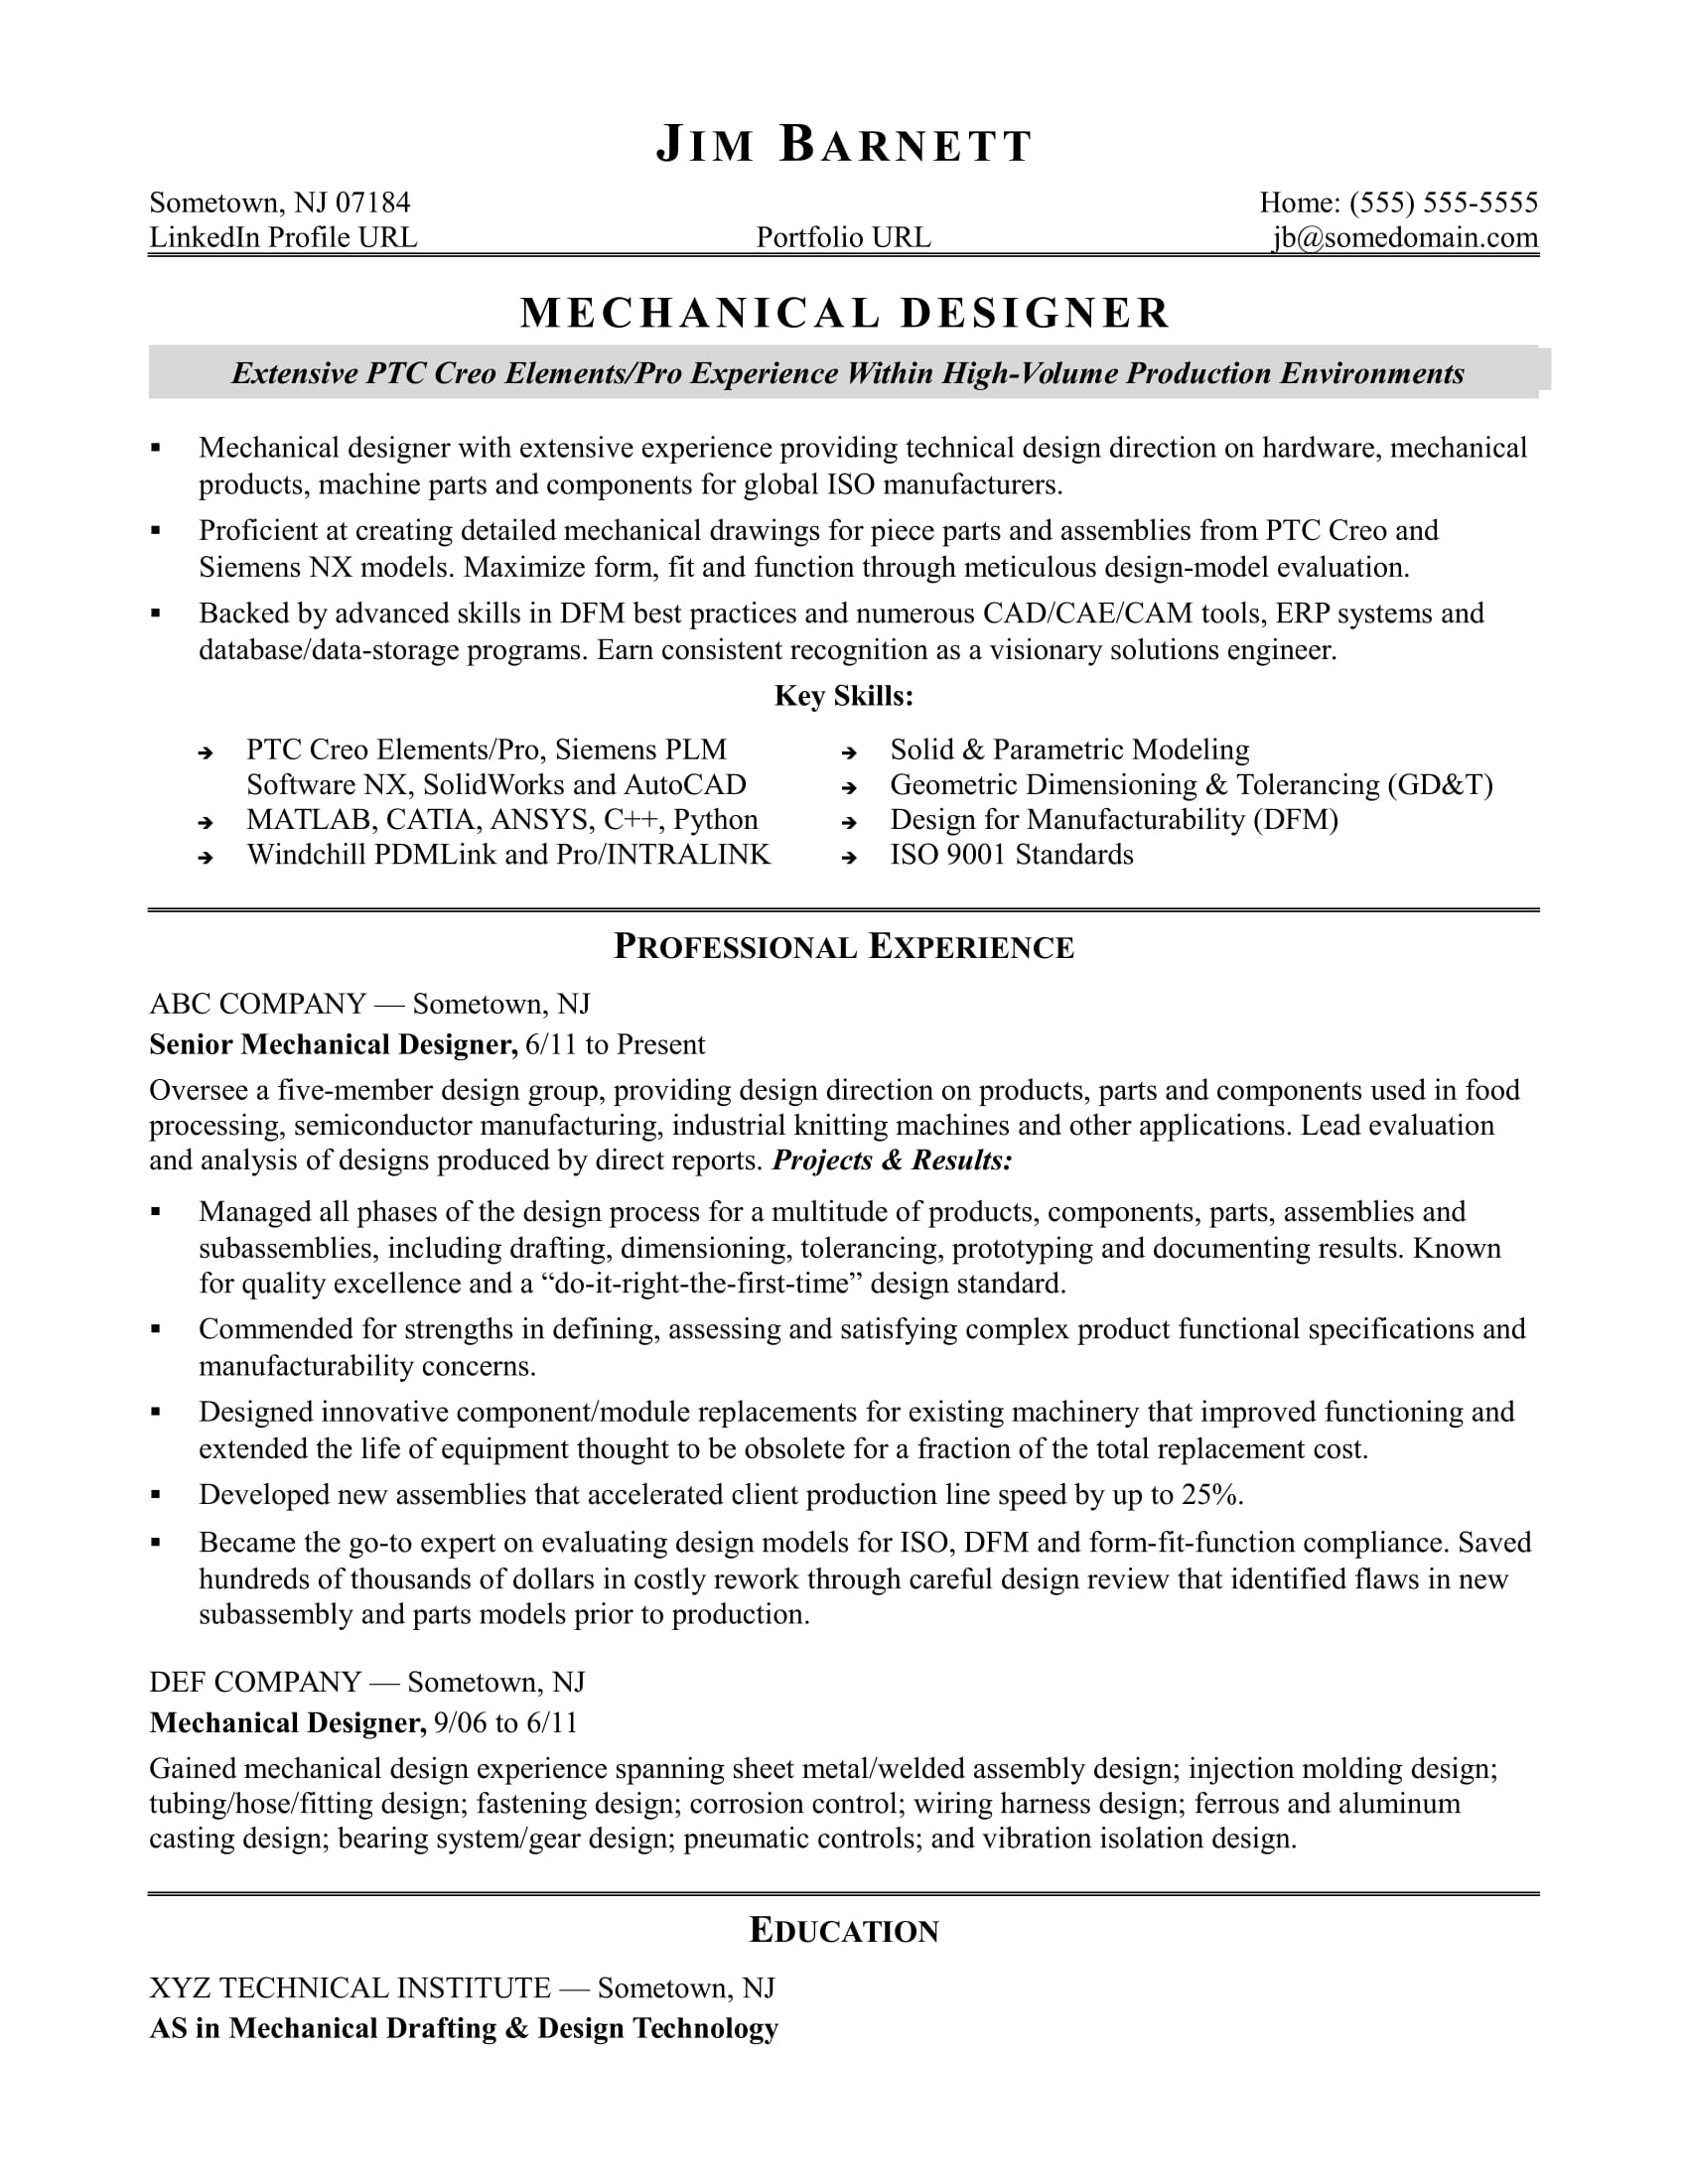 Resume Samples Experienced Engineers Civil Engineering Resume